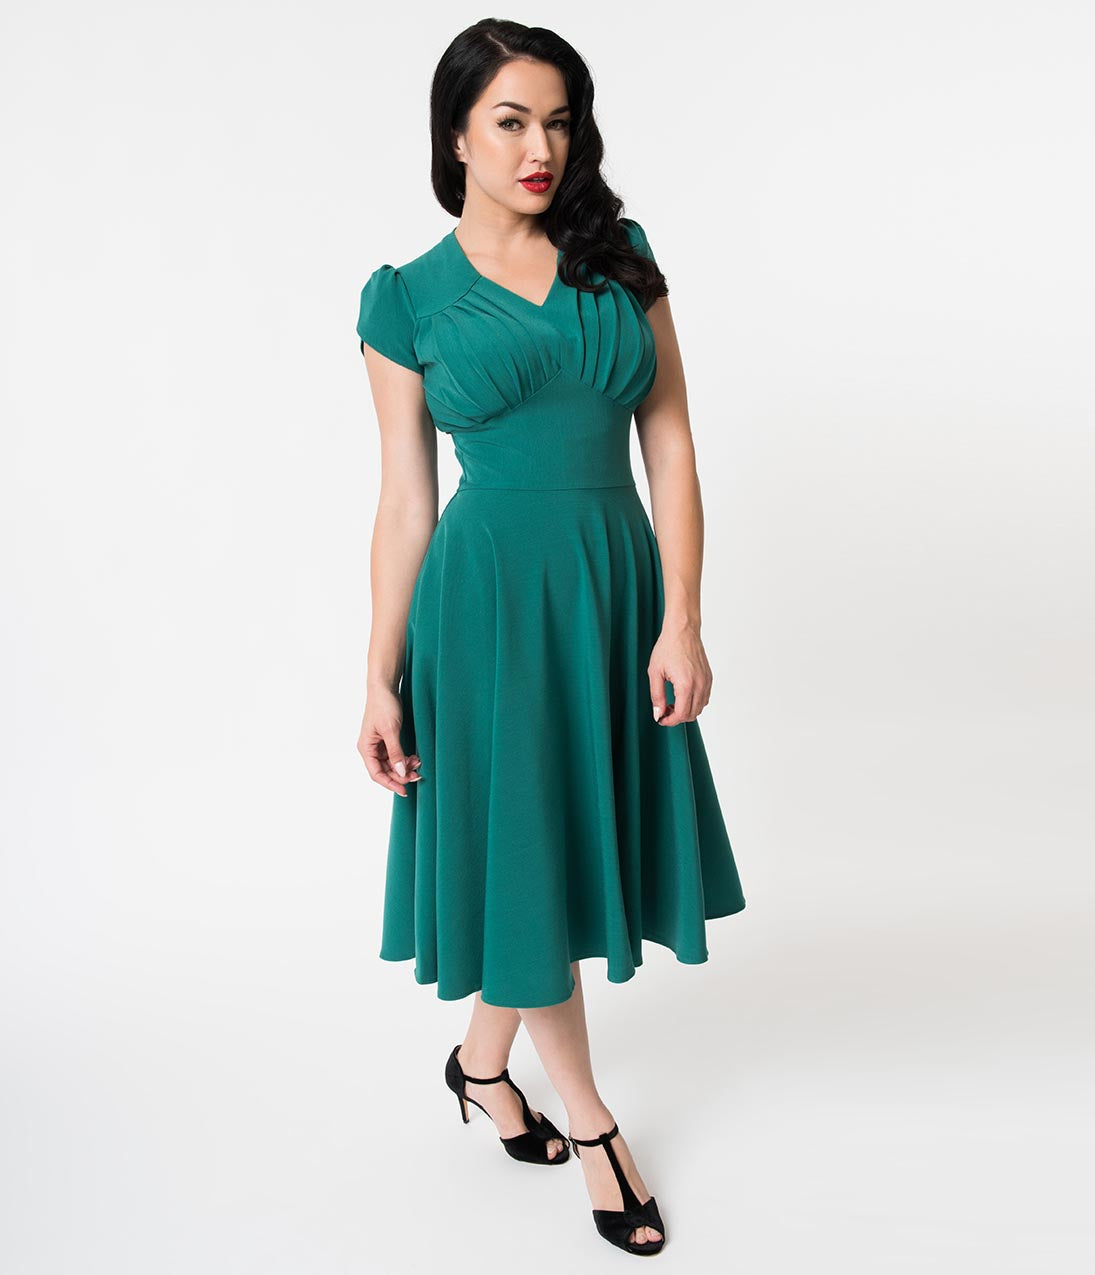 Vintage Tea Dresses, Floral Tea Dresses, Tea Length Dresses Retro Style Emerald Green Petal Sleeve Pleated Swing Dress $74.00 AT vintagedancer.com